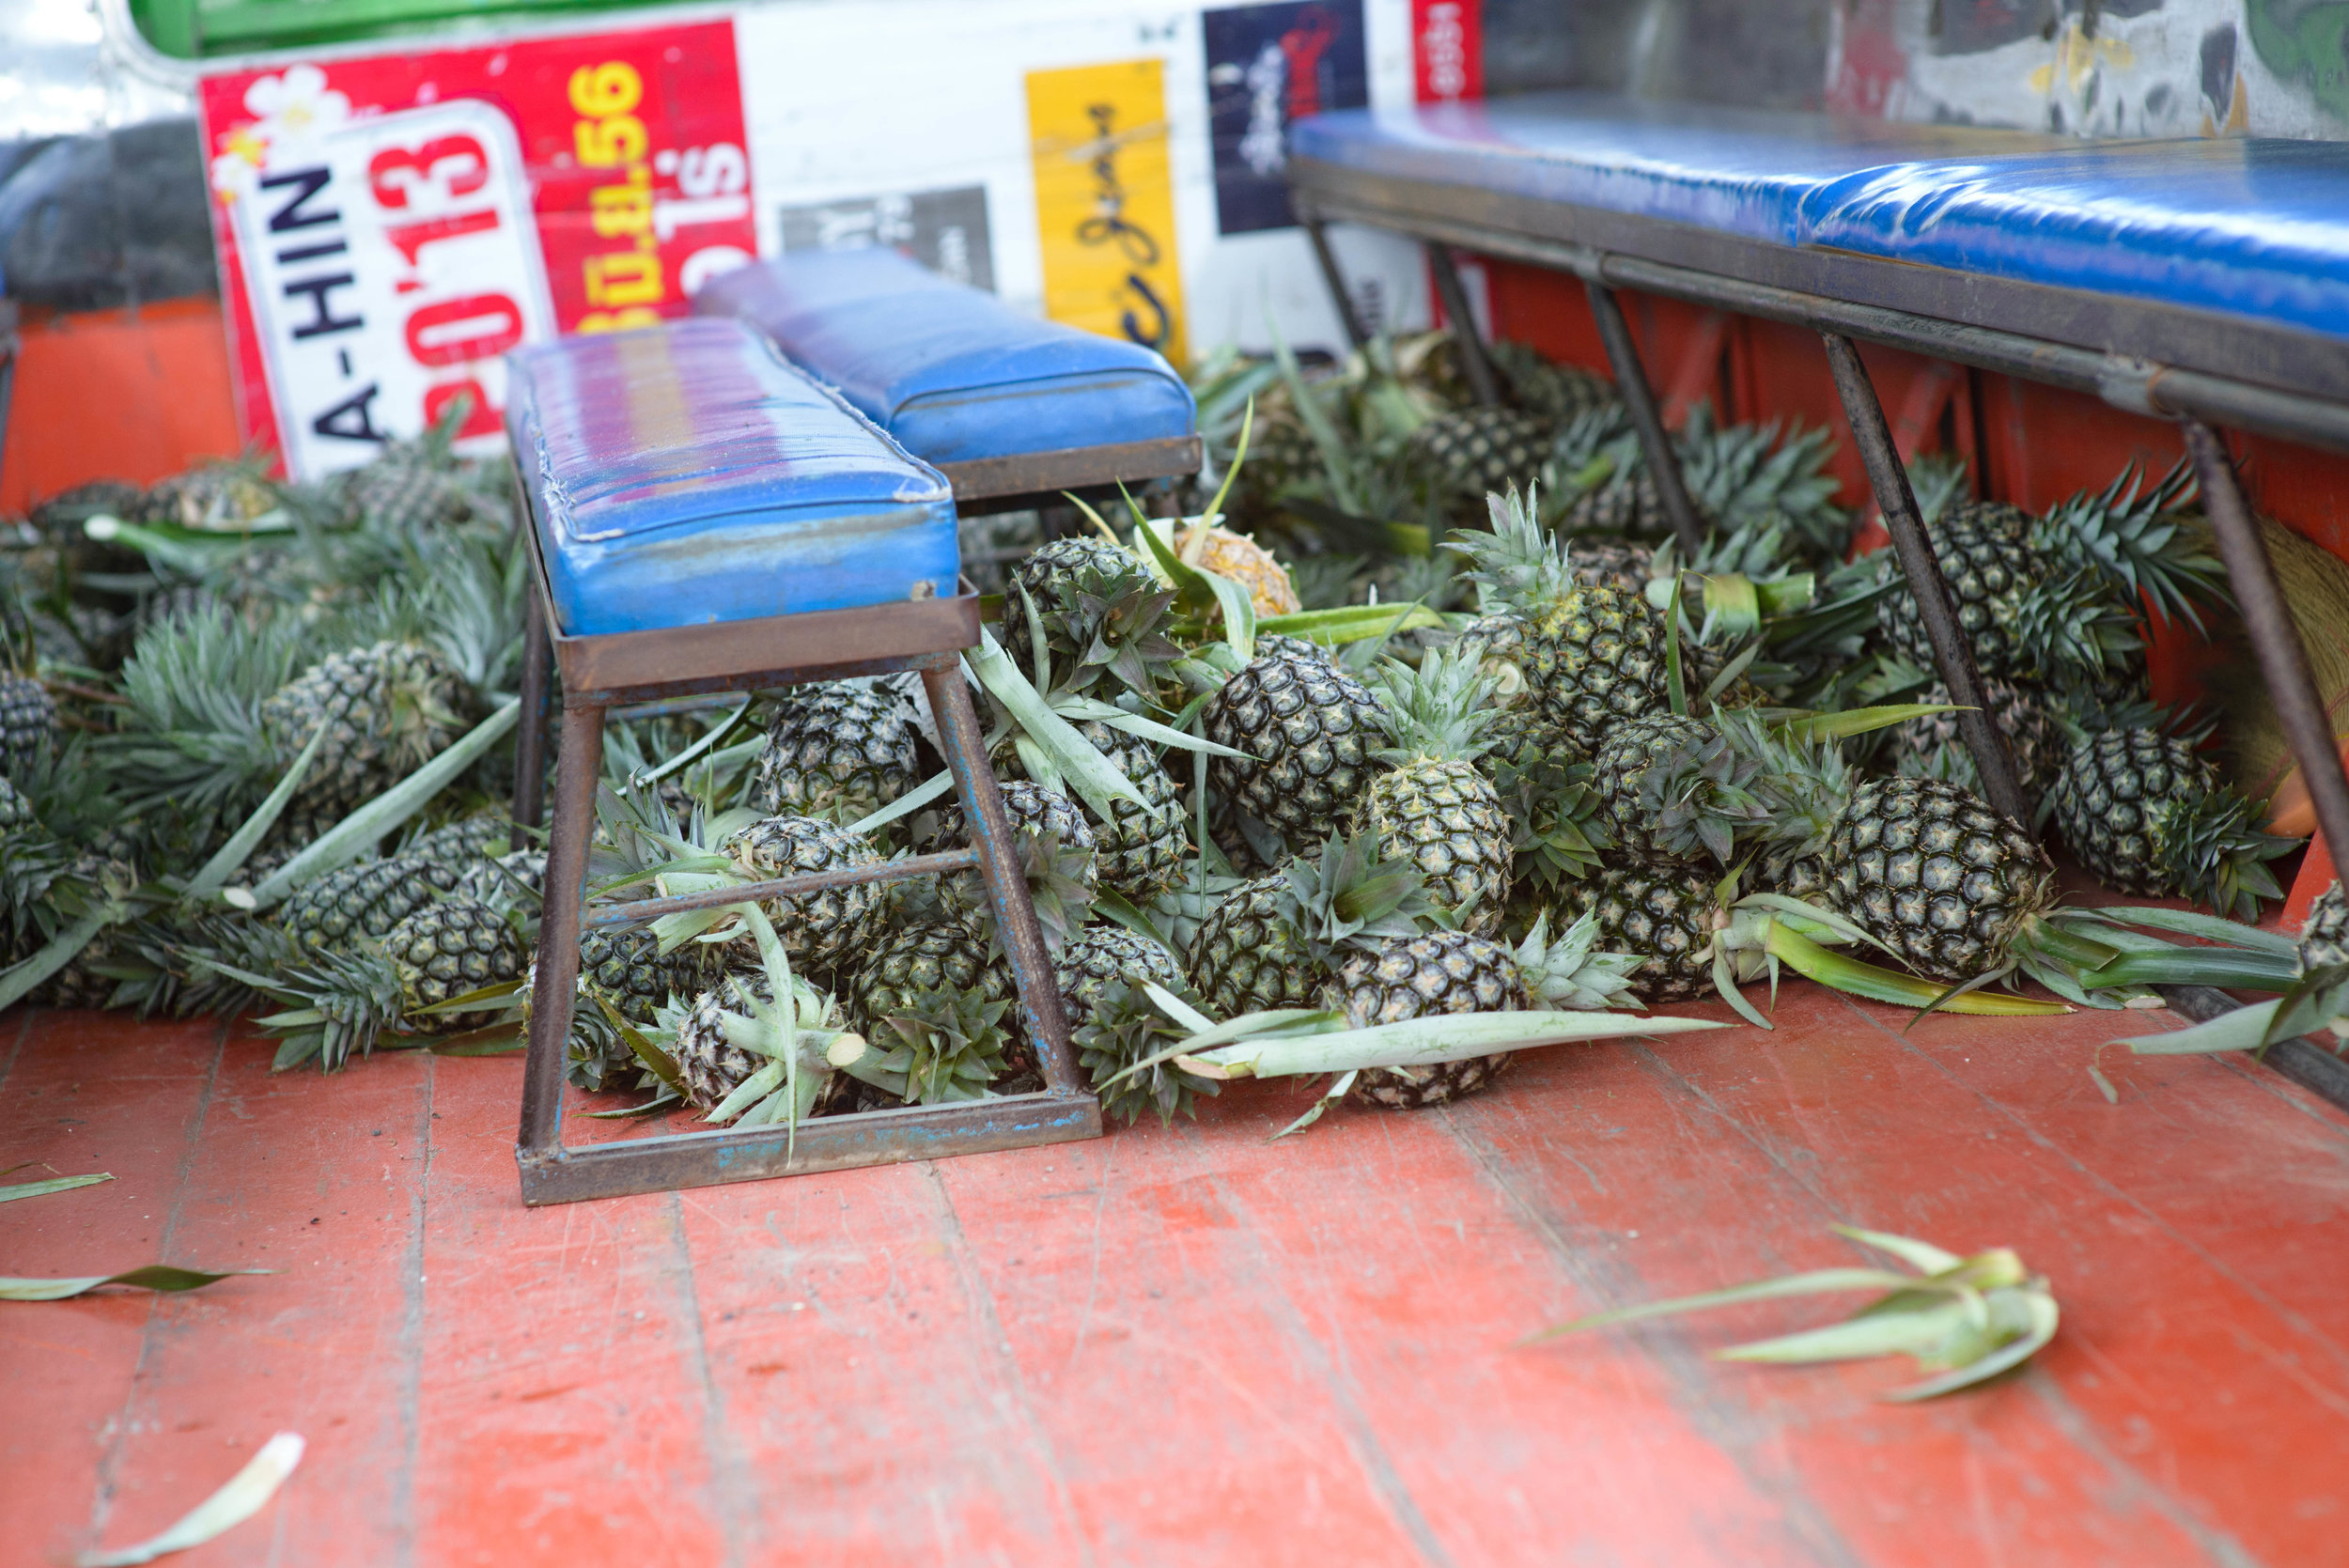 We collected pineapples for the elephants and threw them into our truck.